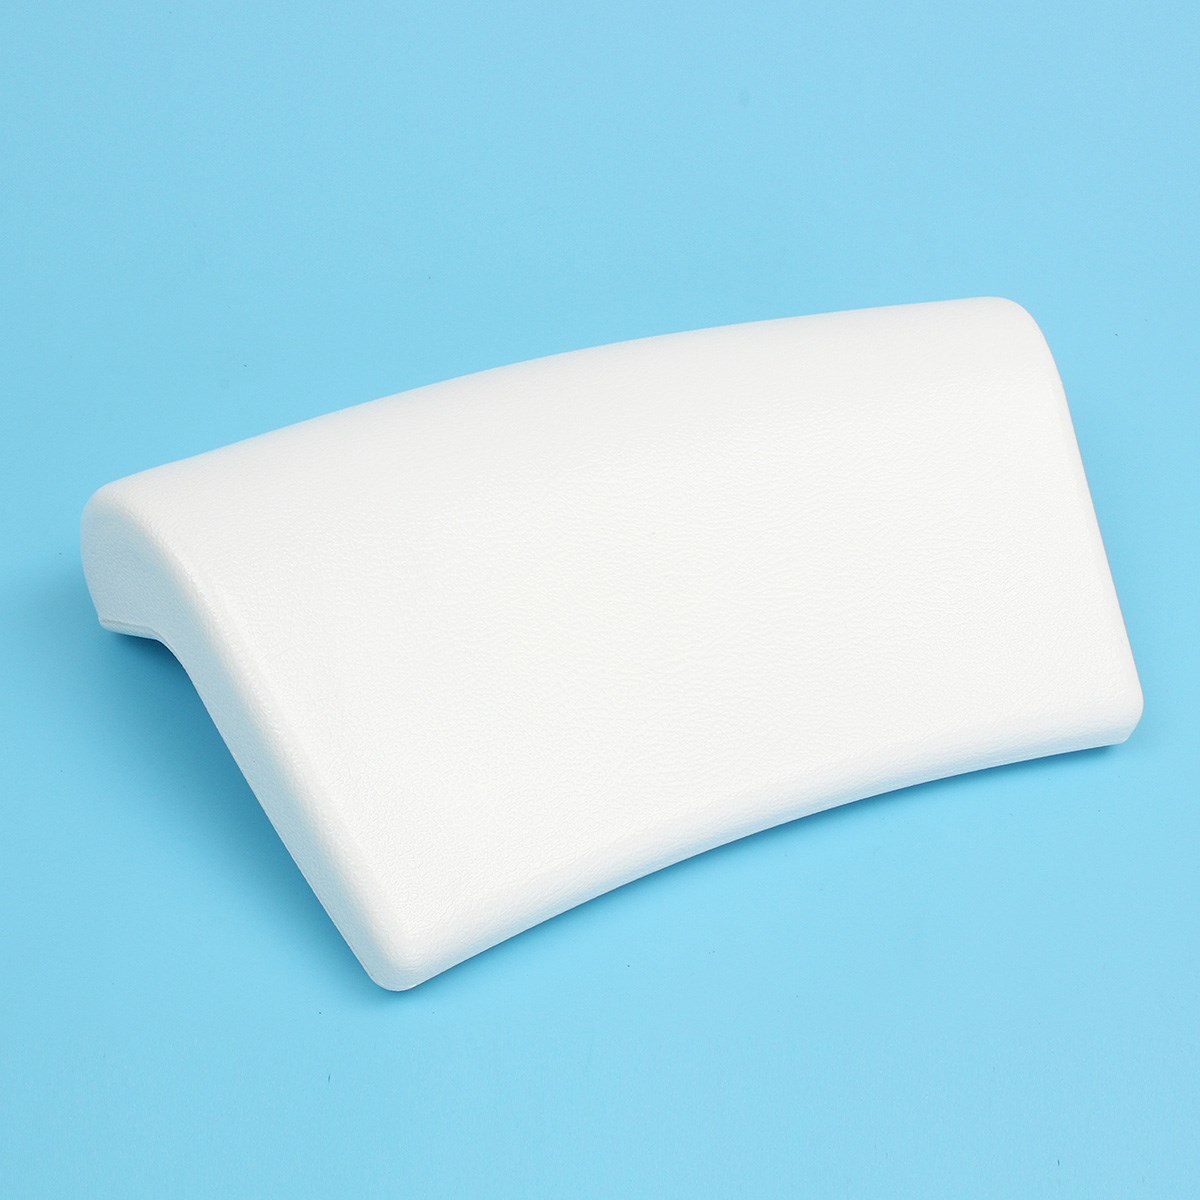 Bathtub backrest headrest - Bathtub Pillows Household Comfortable Bathroom Supplies Headrest Waterproof Bath Pillows Bath Spa Cushion China